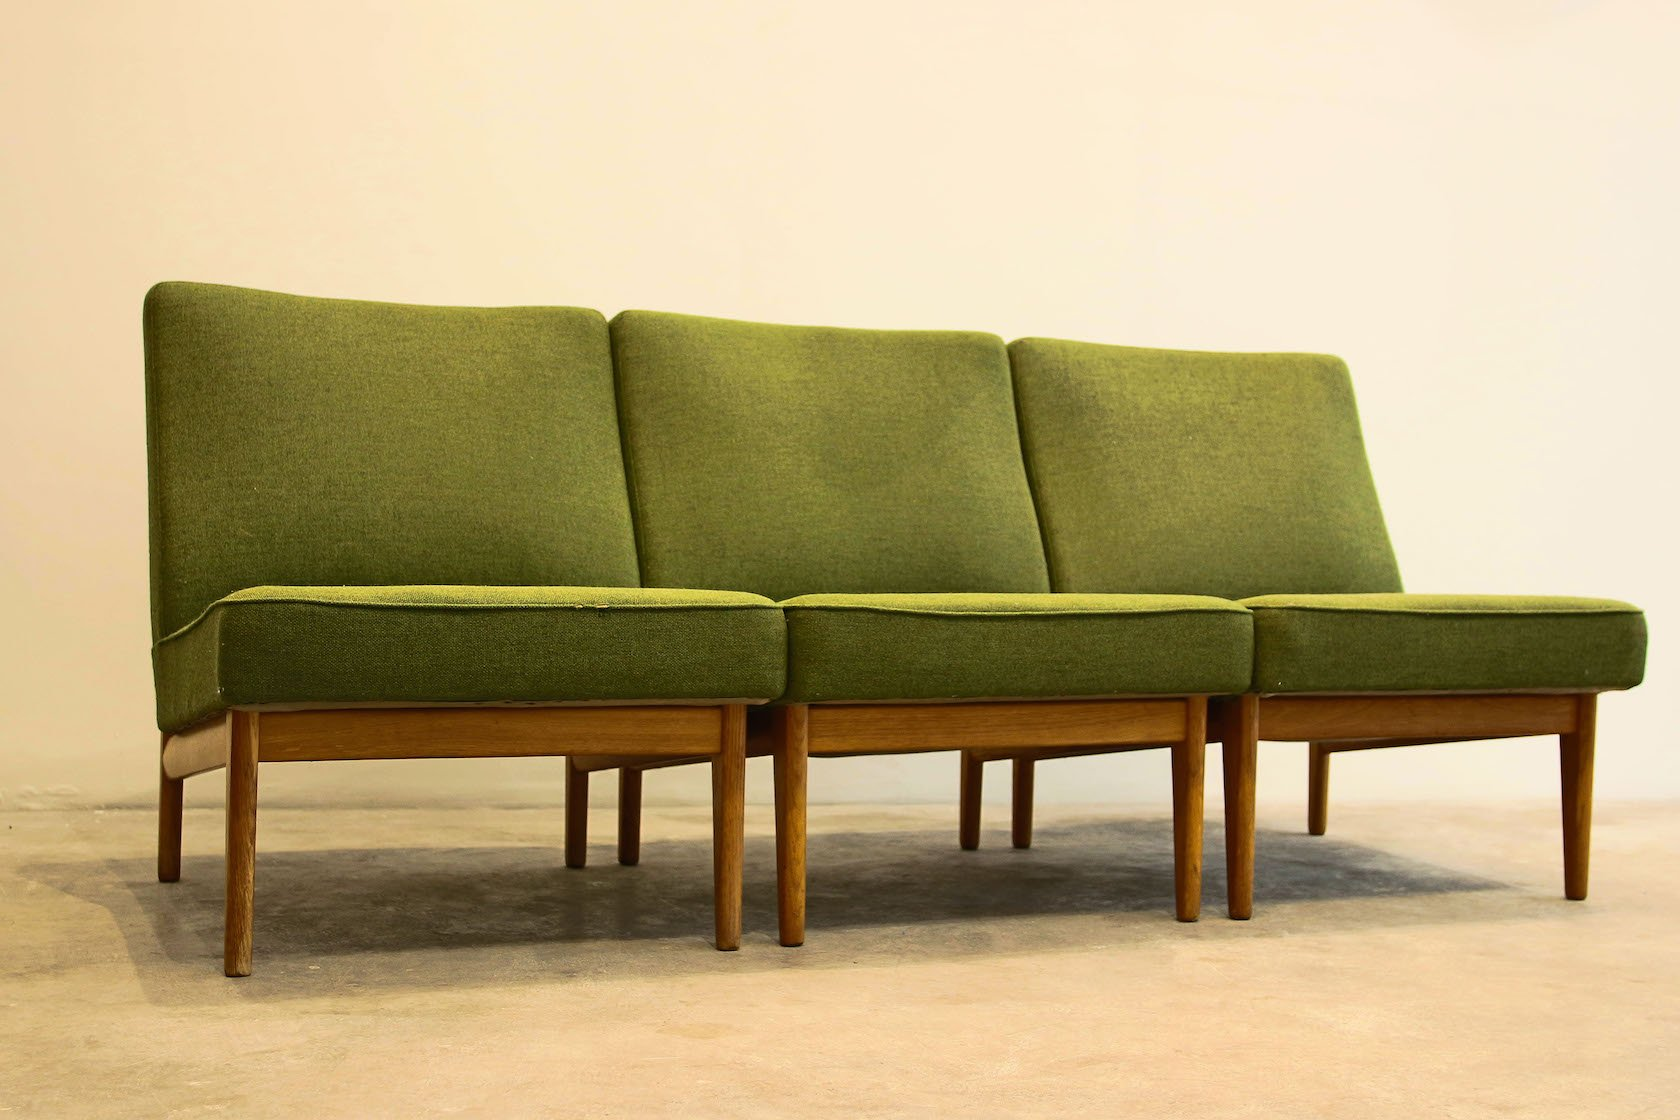 Vintage Scandinavian Sofa In Green For Sale At Pamono